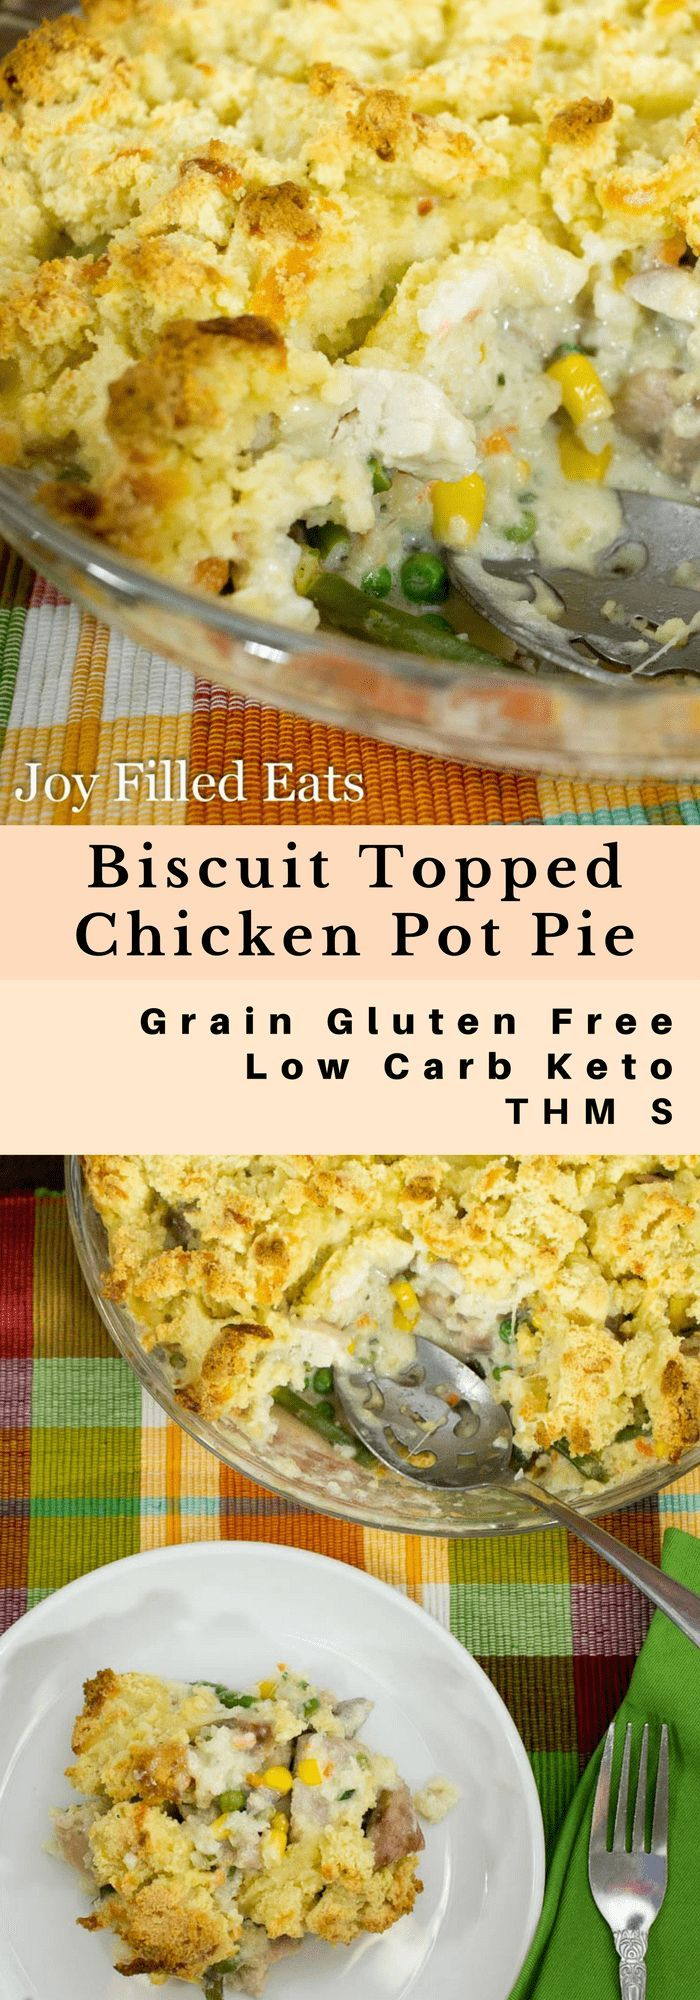 Low Carb Chicken Pot Pie with Biscuit Topping Grain